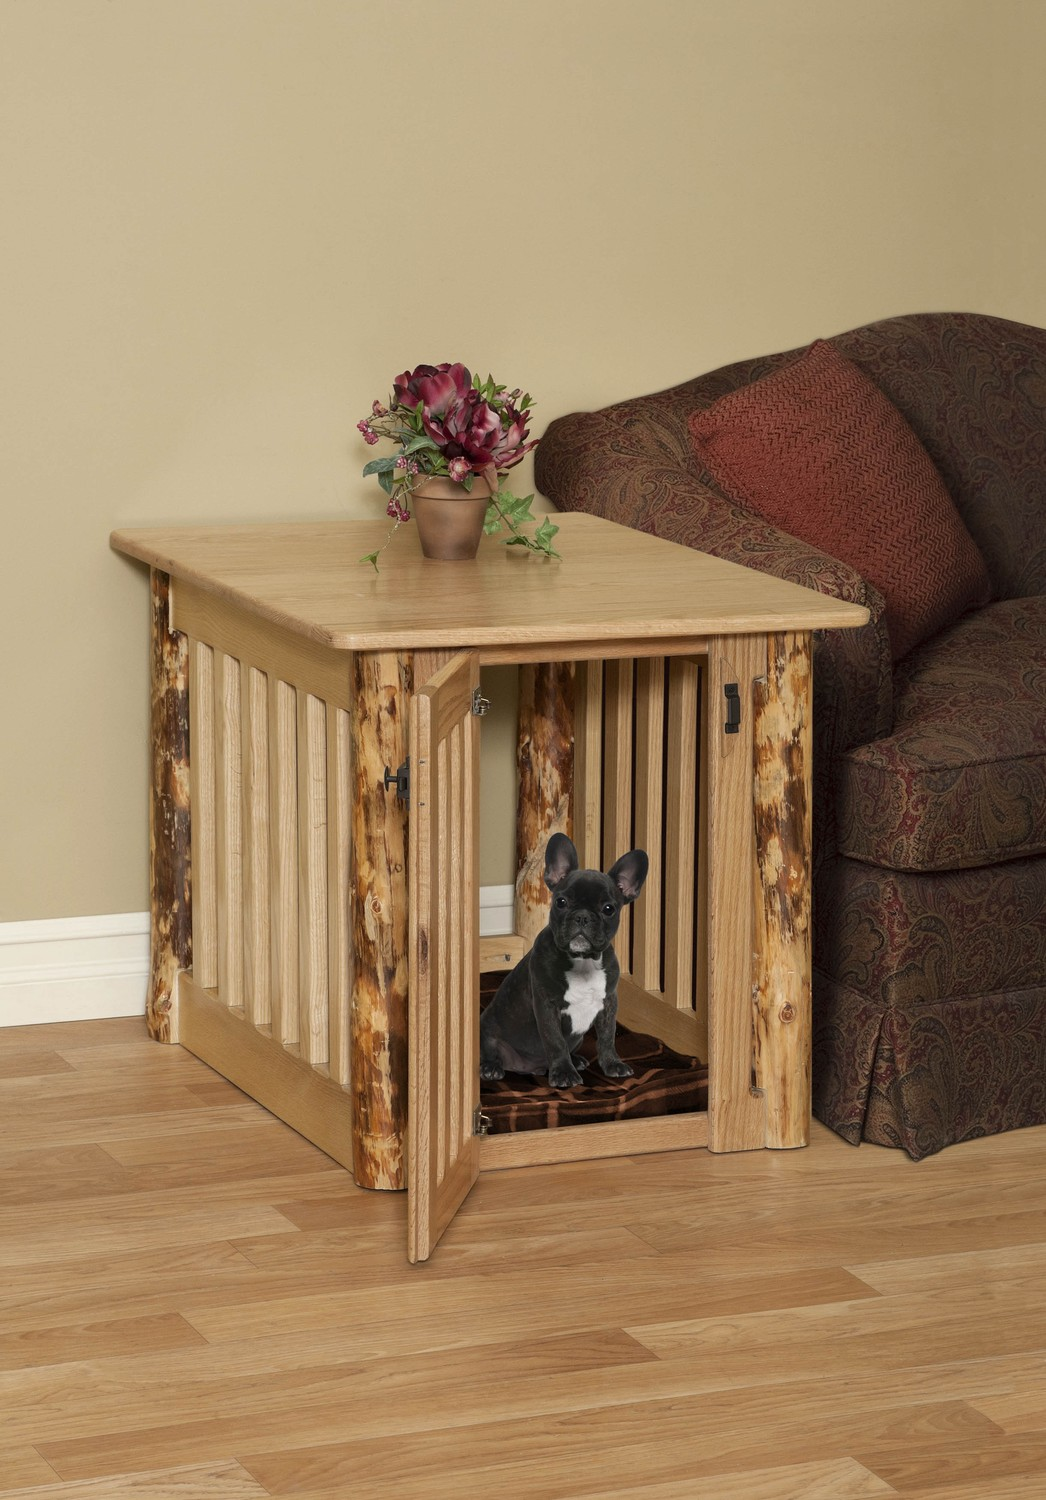 dog crate end table idea tuckr box decors making plans ashley select furniture thomasville set inch patio lay boy sofa magnussen entertainment center made from crates french style